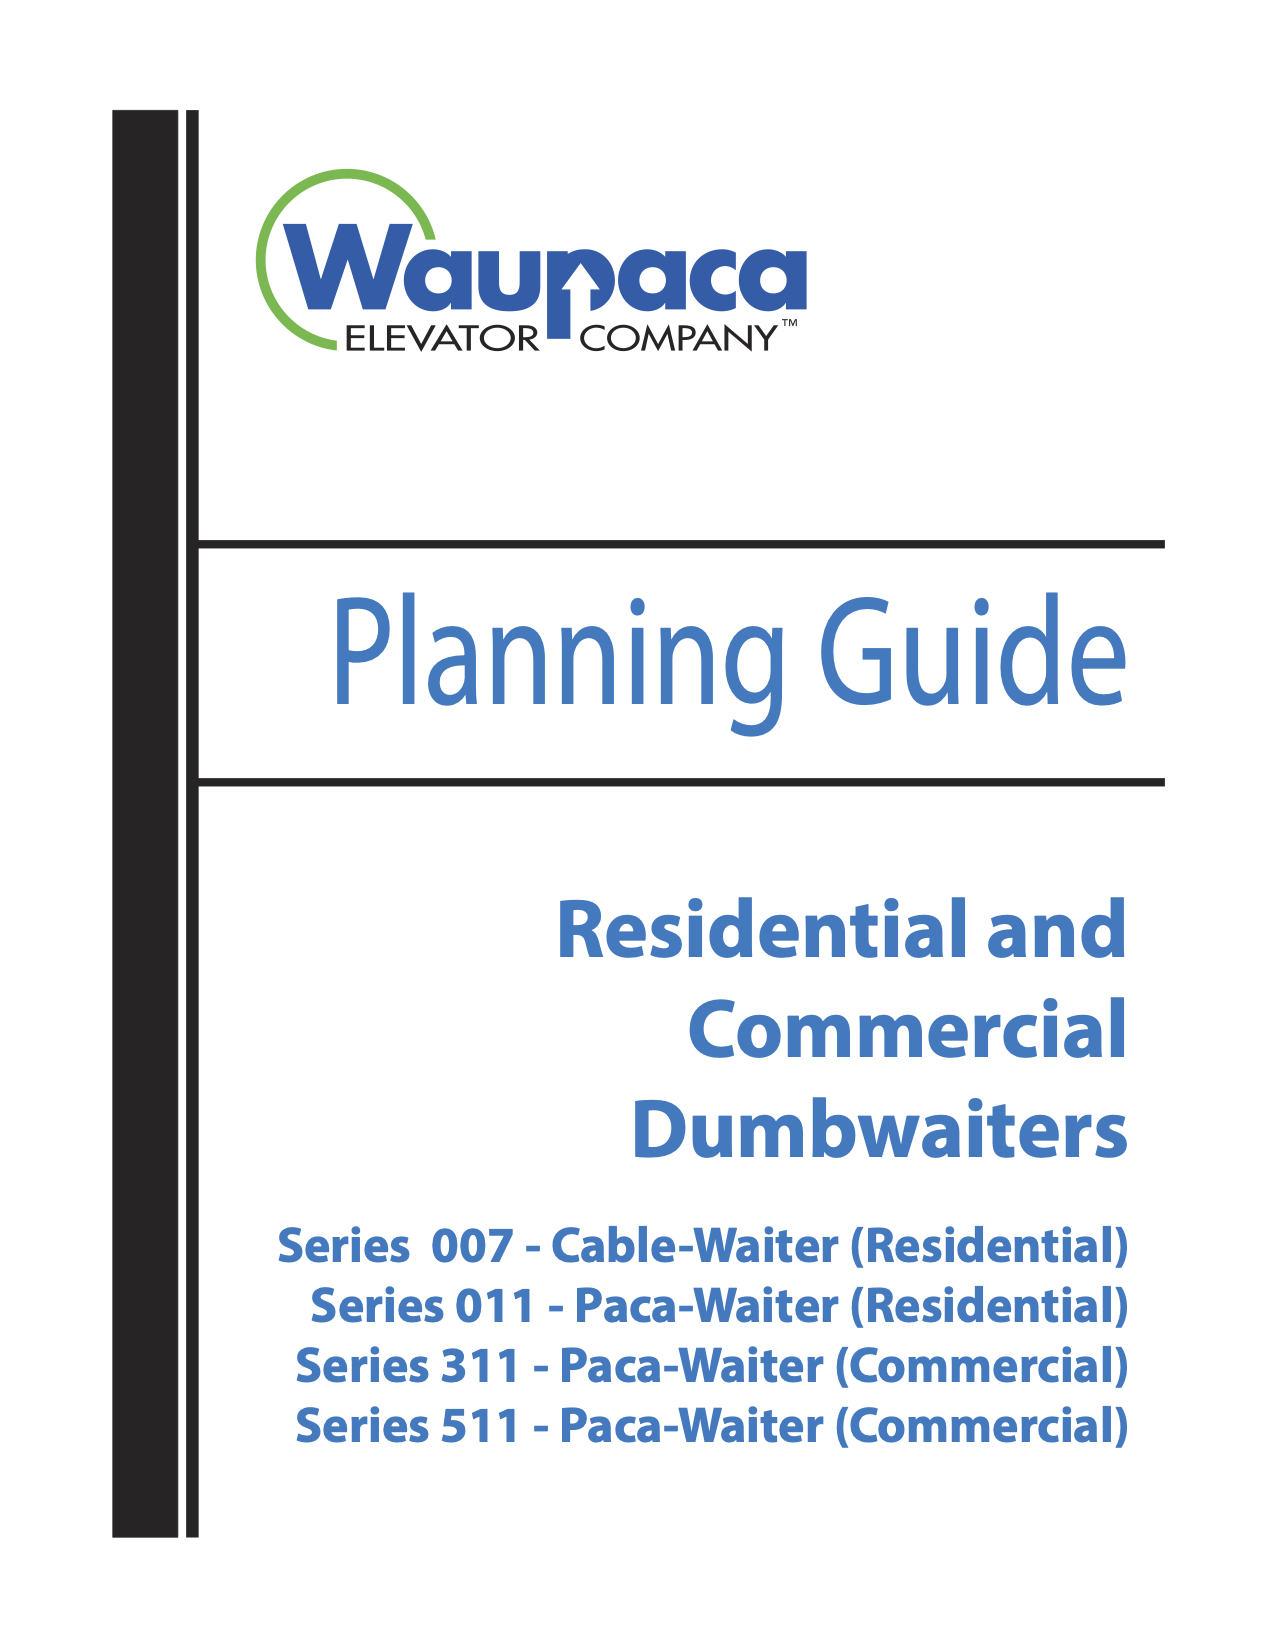 Brochure & Planning Guide PDFs